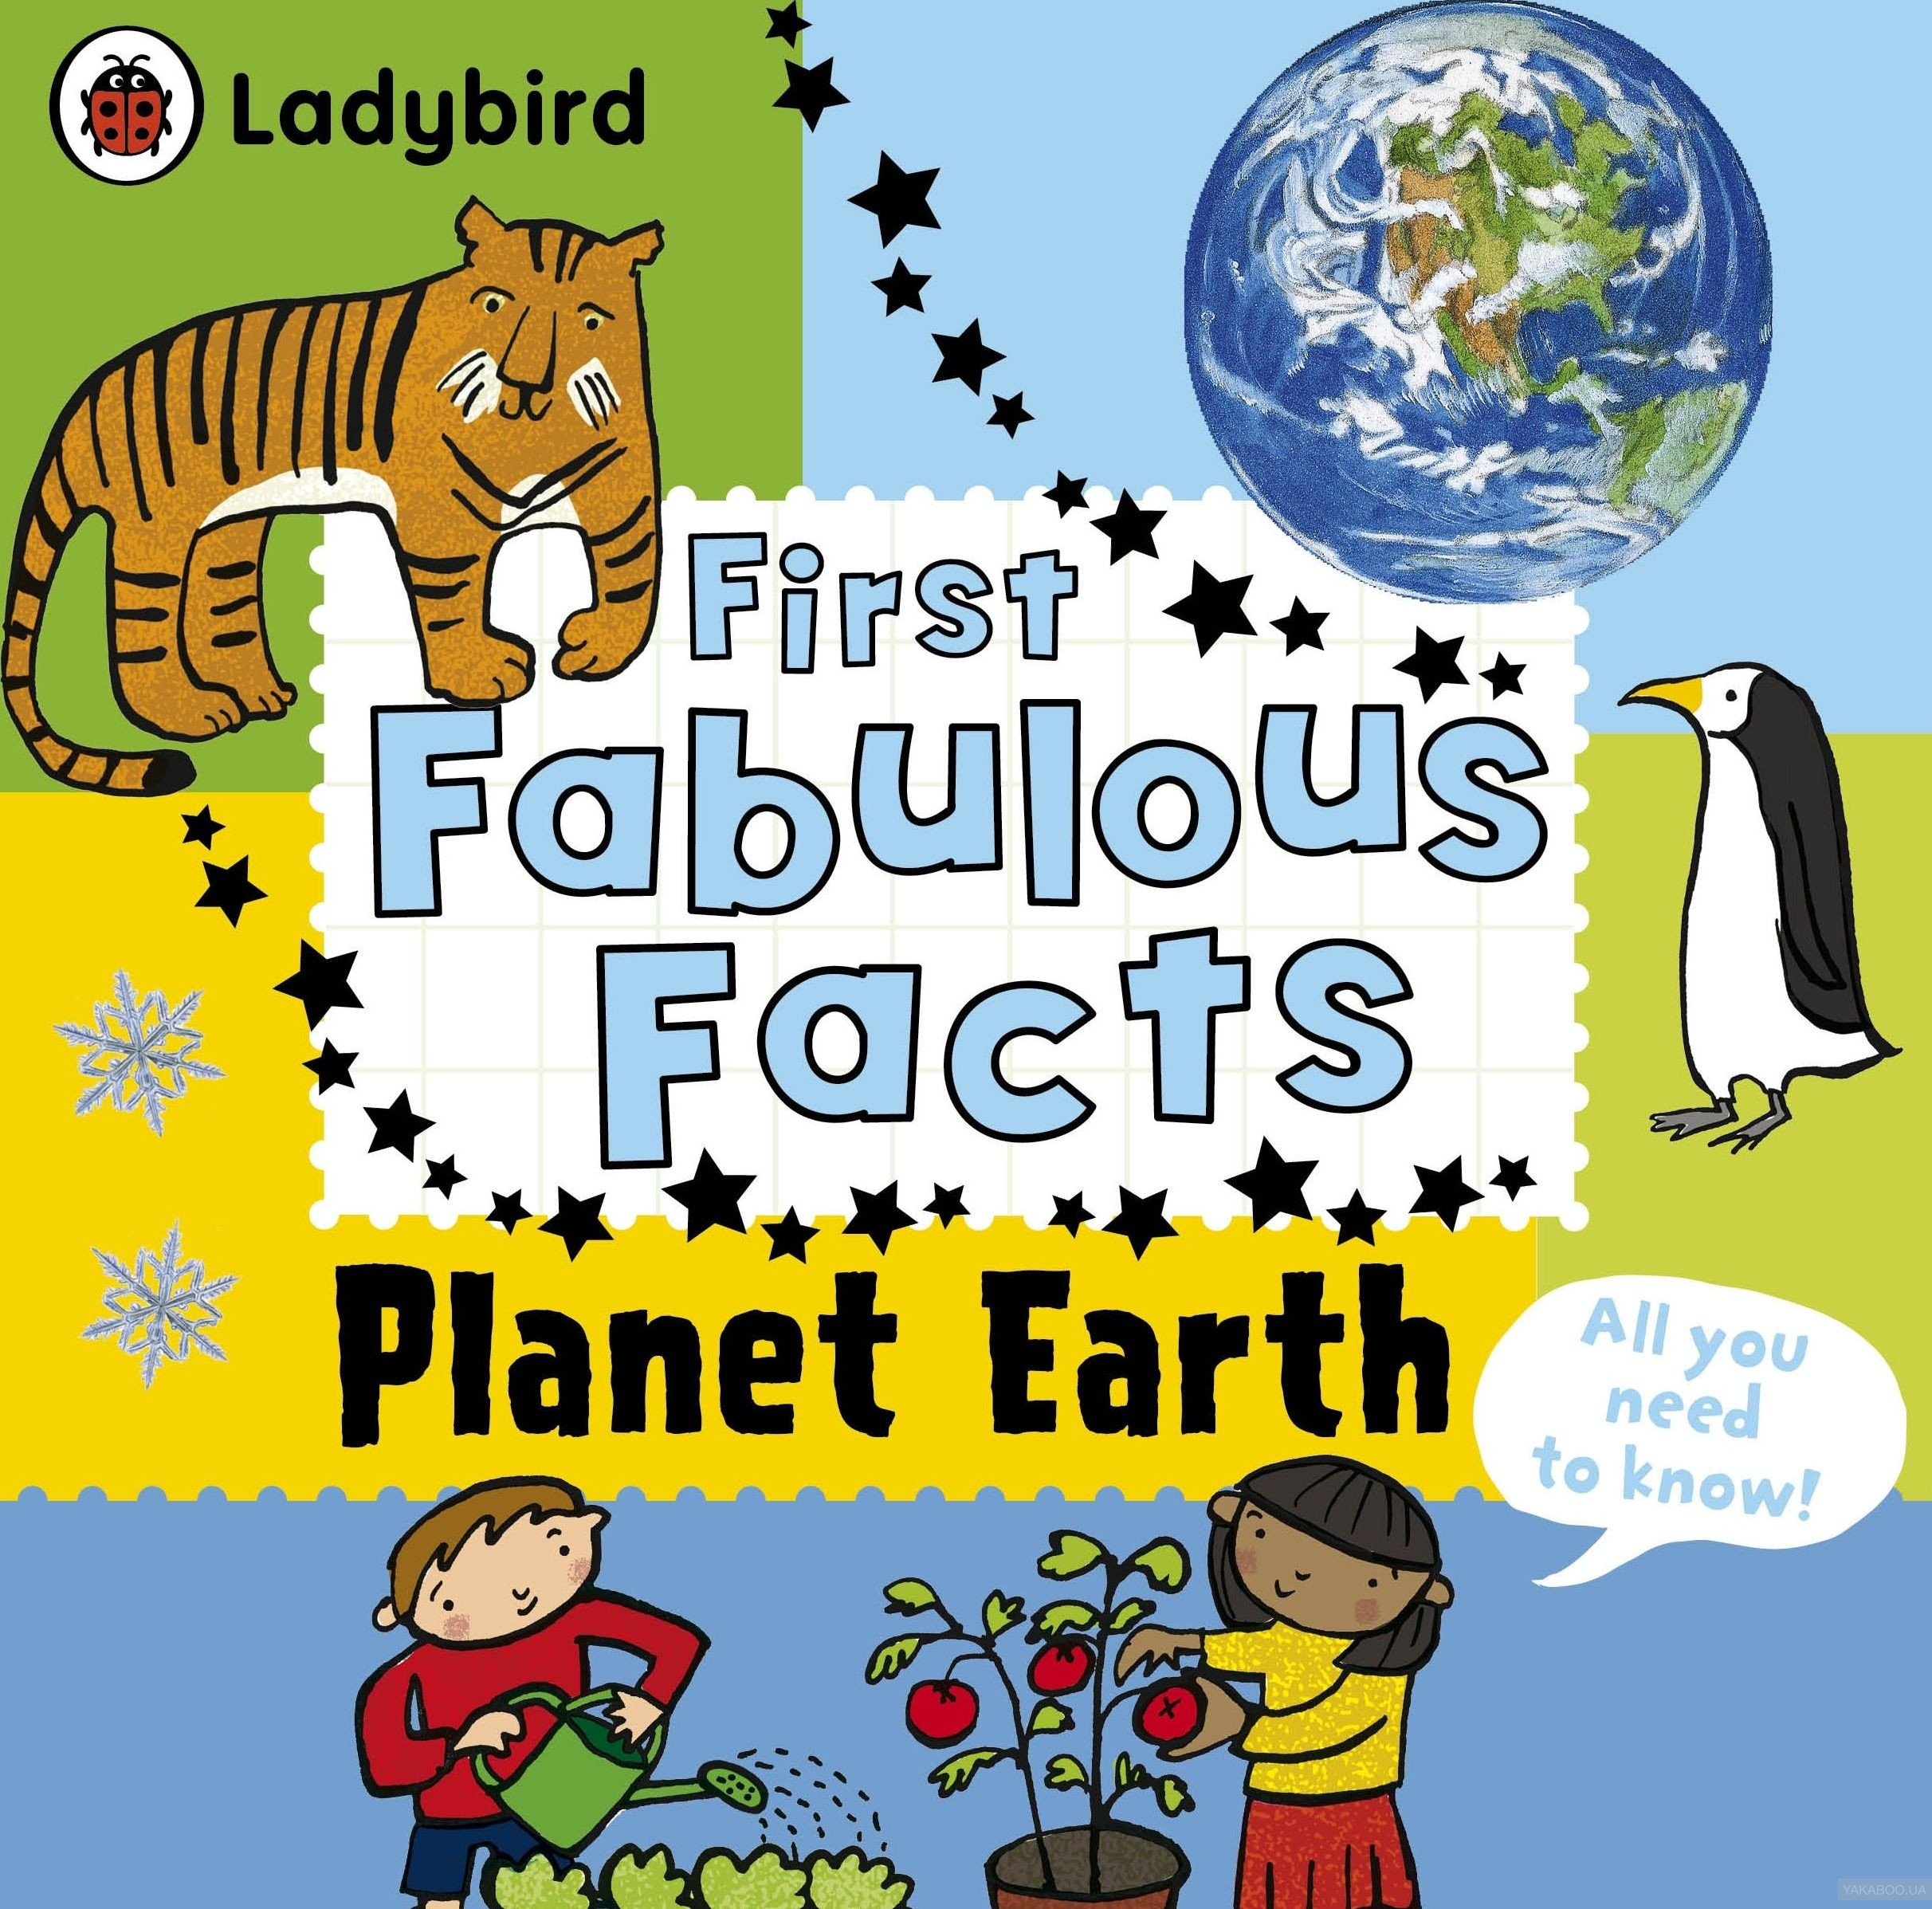 Ladybird First Fabulous Facts Planet Earth